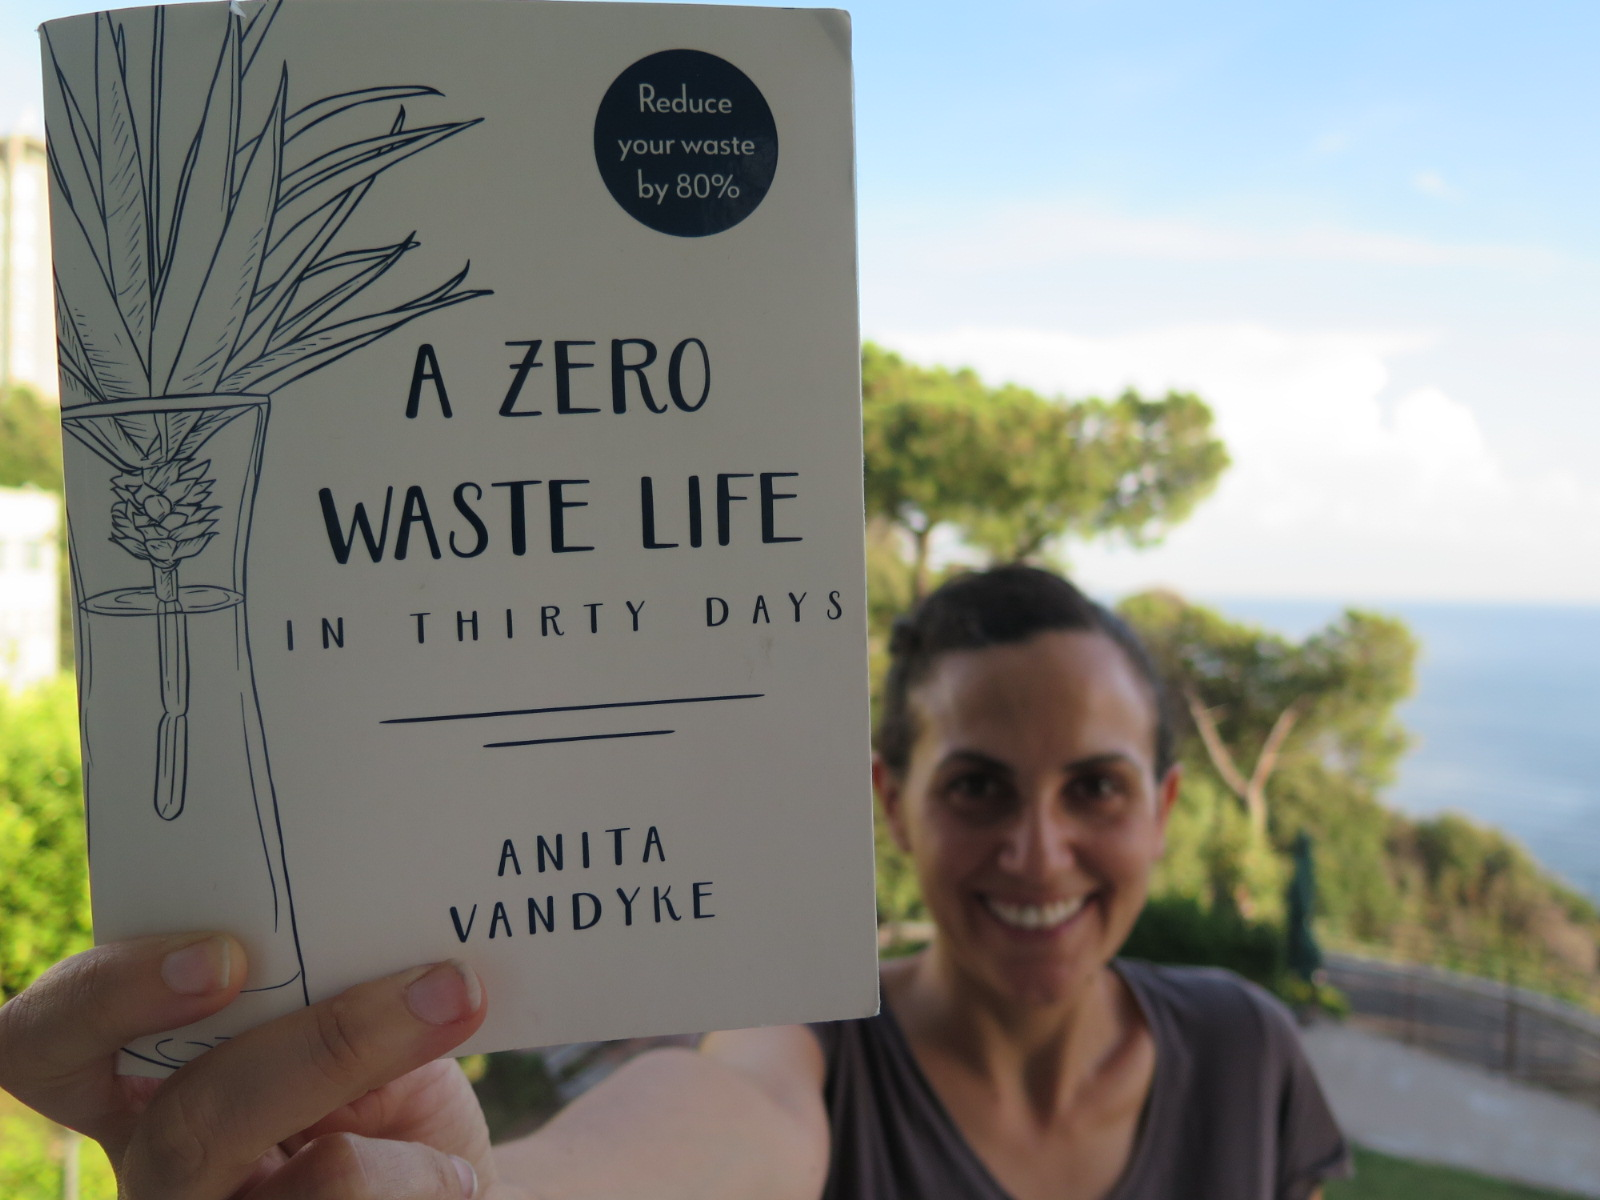 A zero waste life in thirty days